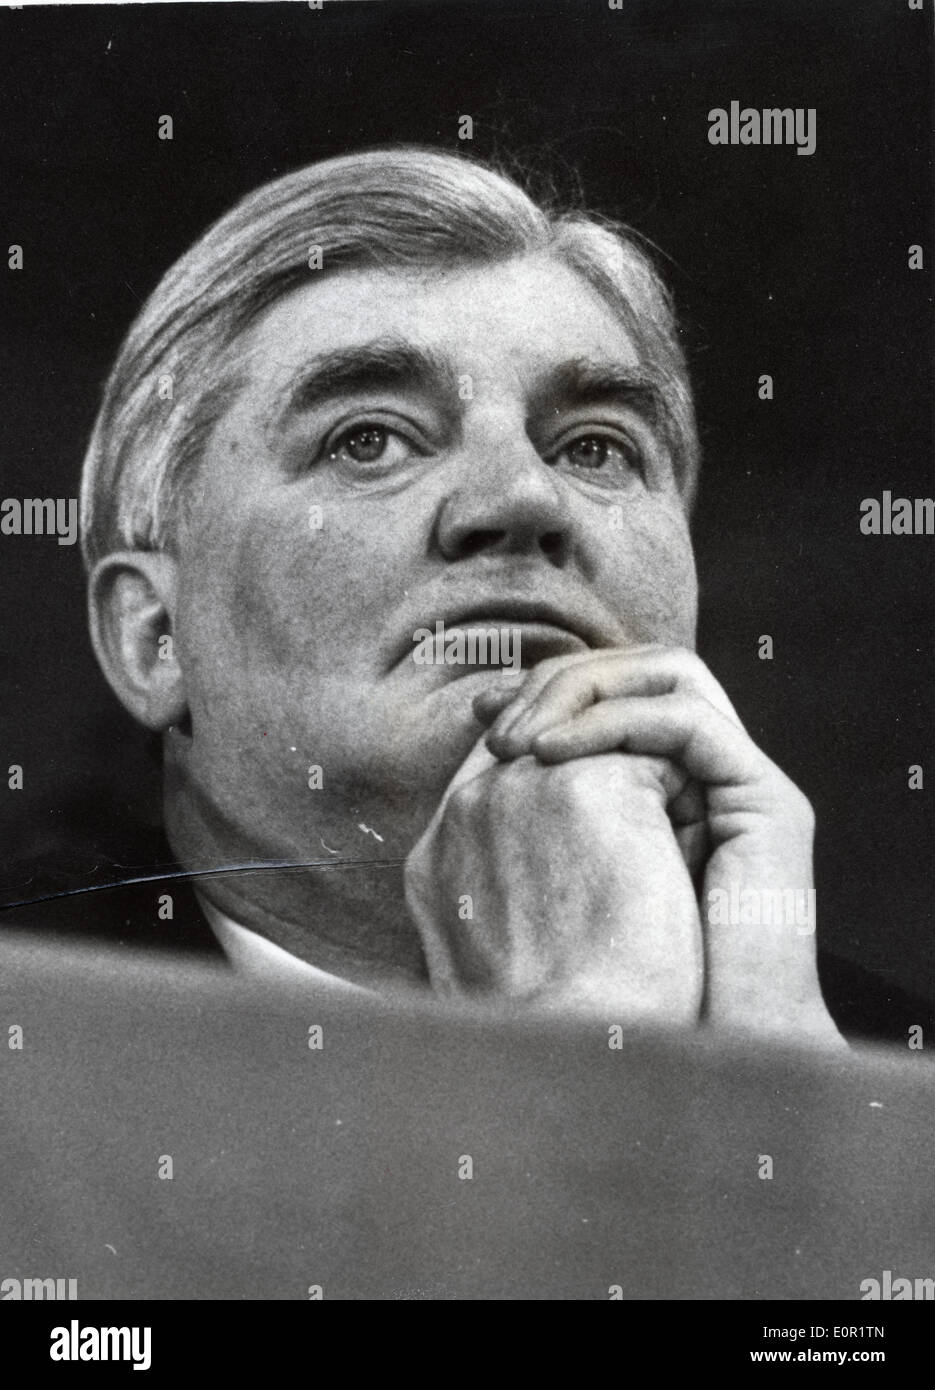 Politician Aneurin Bevan listens to speeches at a conference - Stock Image